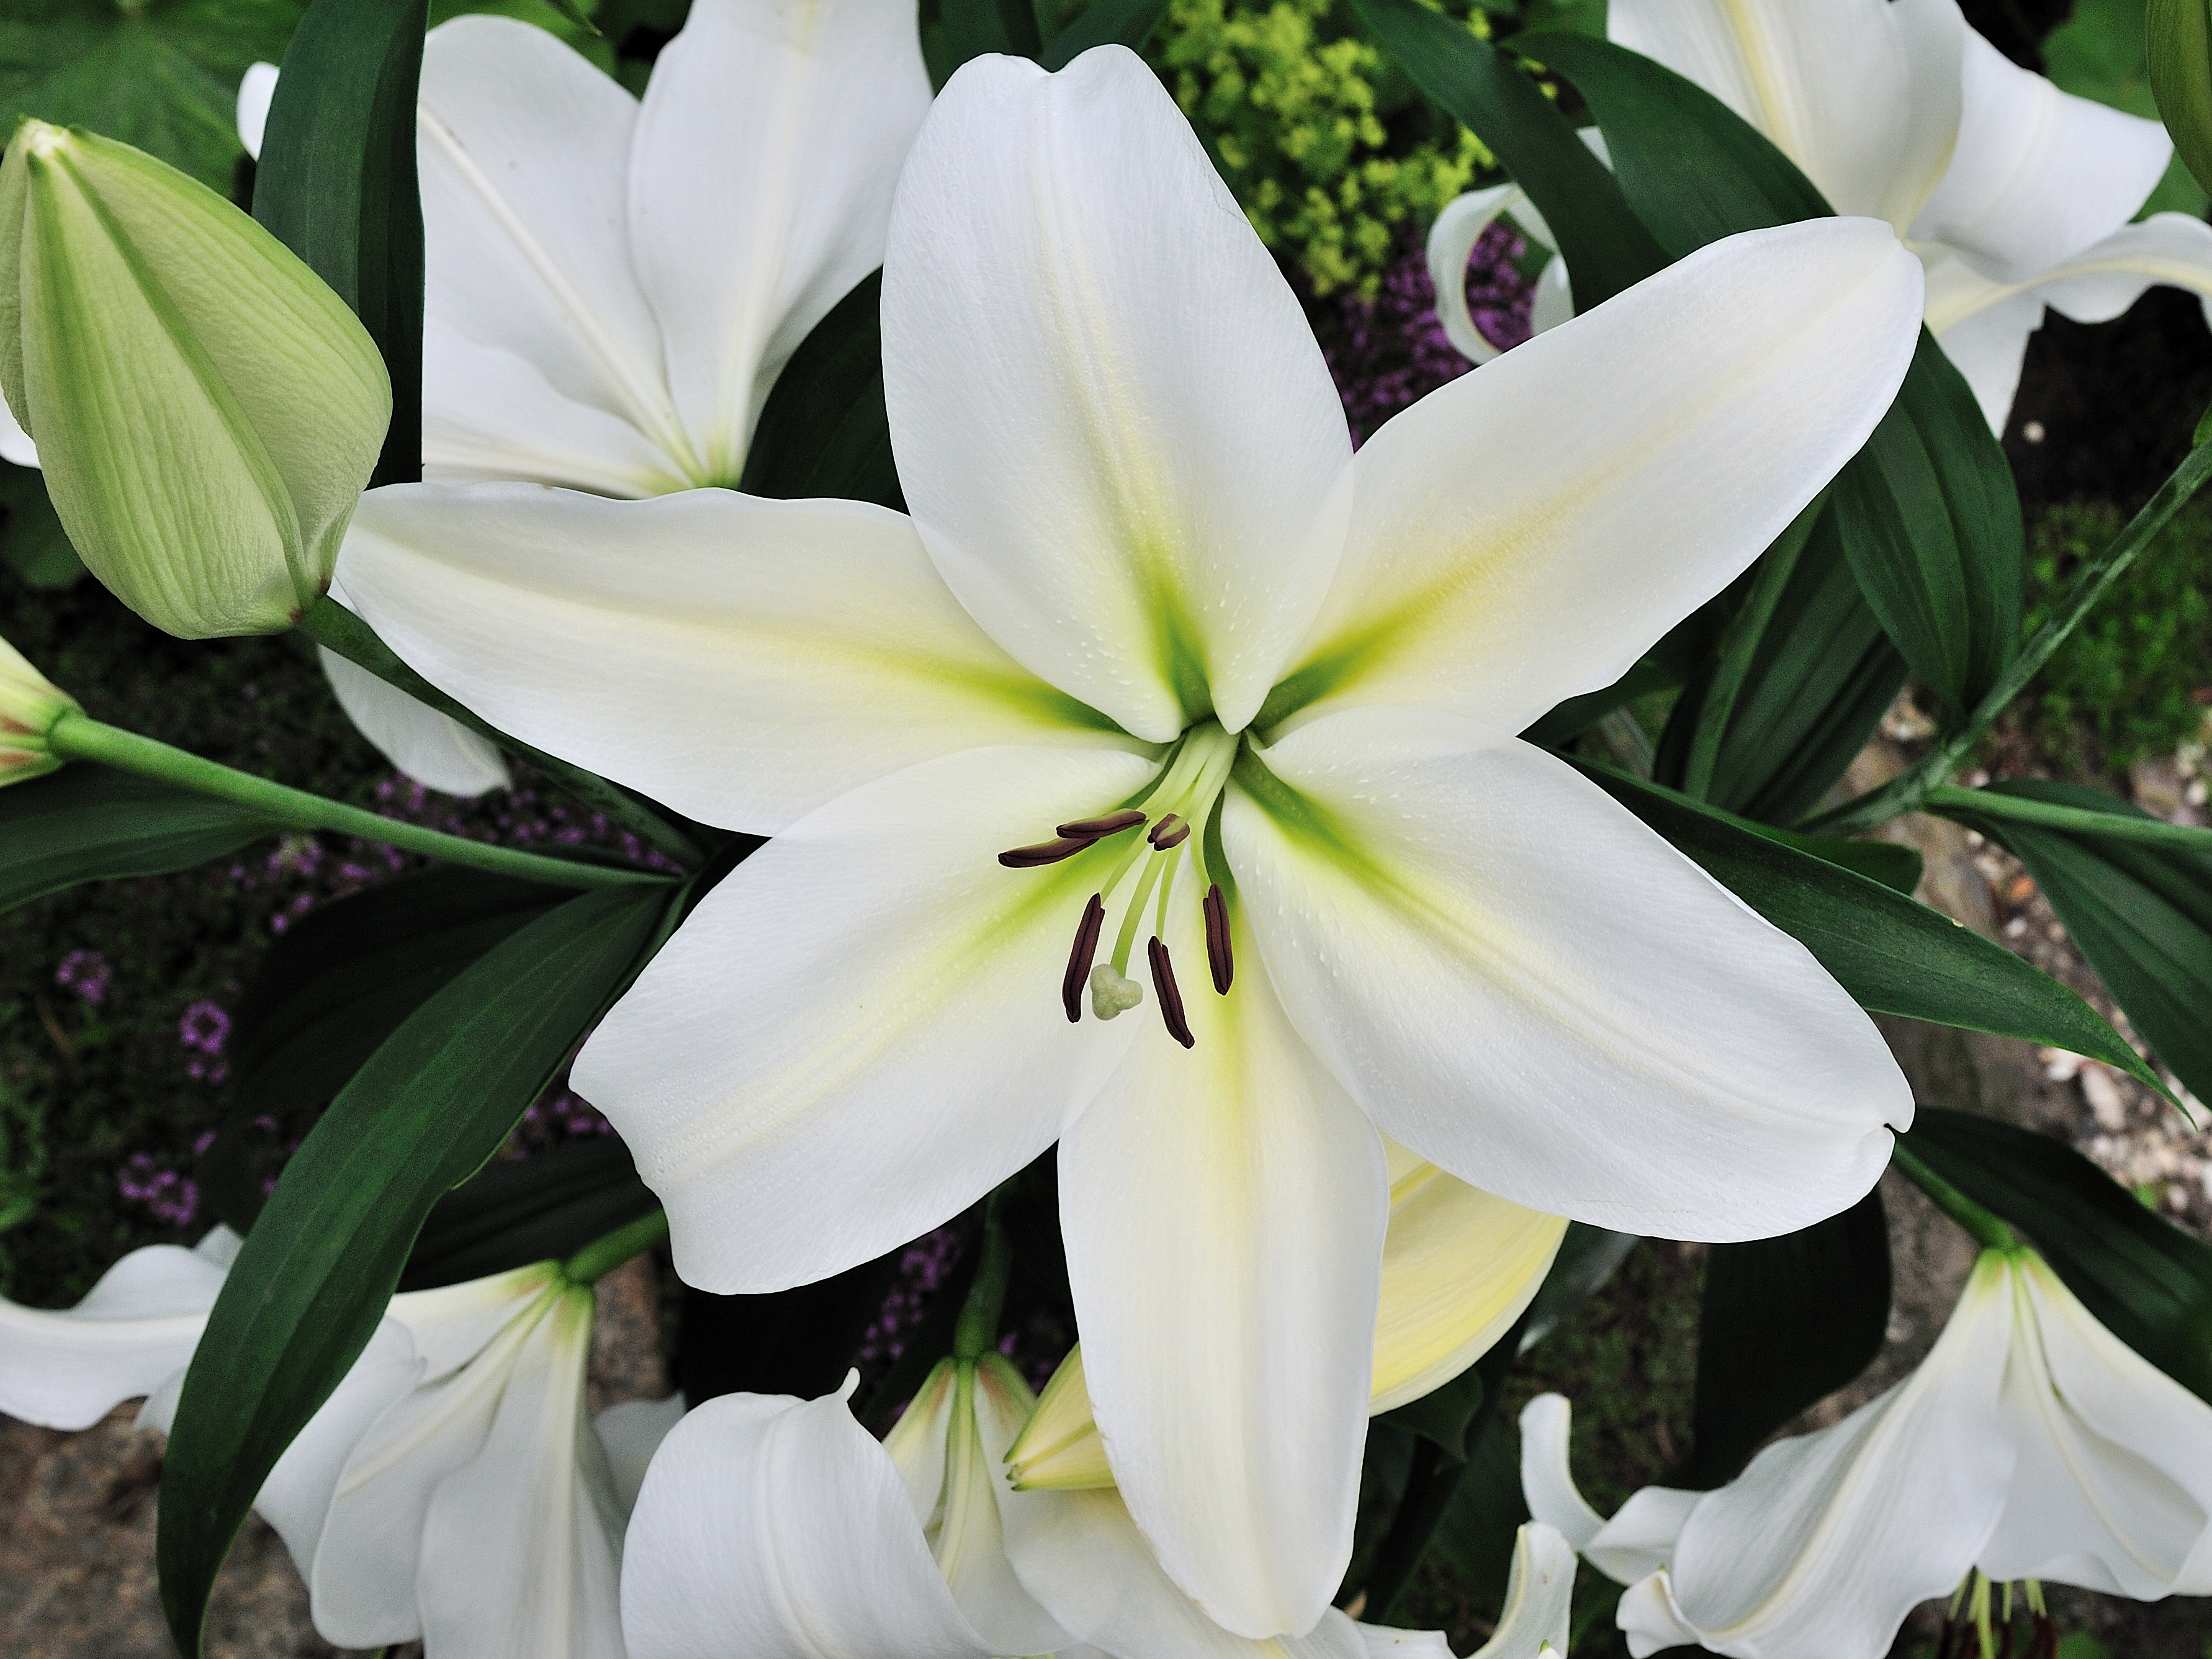 Gizmo longiflorum oriental lily from the gold medal winning harts gizmo gizmo longiflorum oriental lily izmirmasajfo Image collections